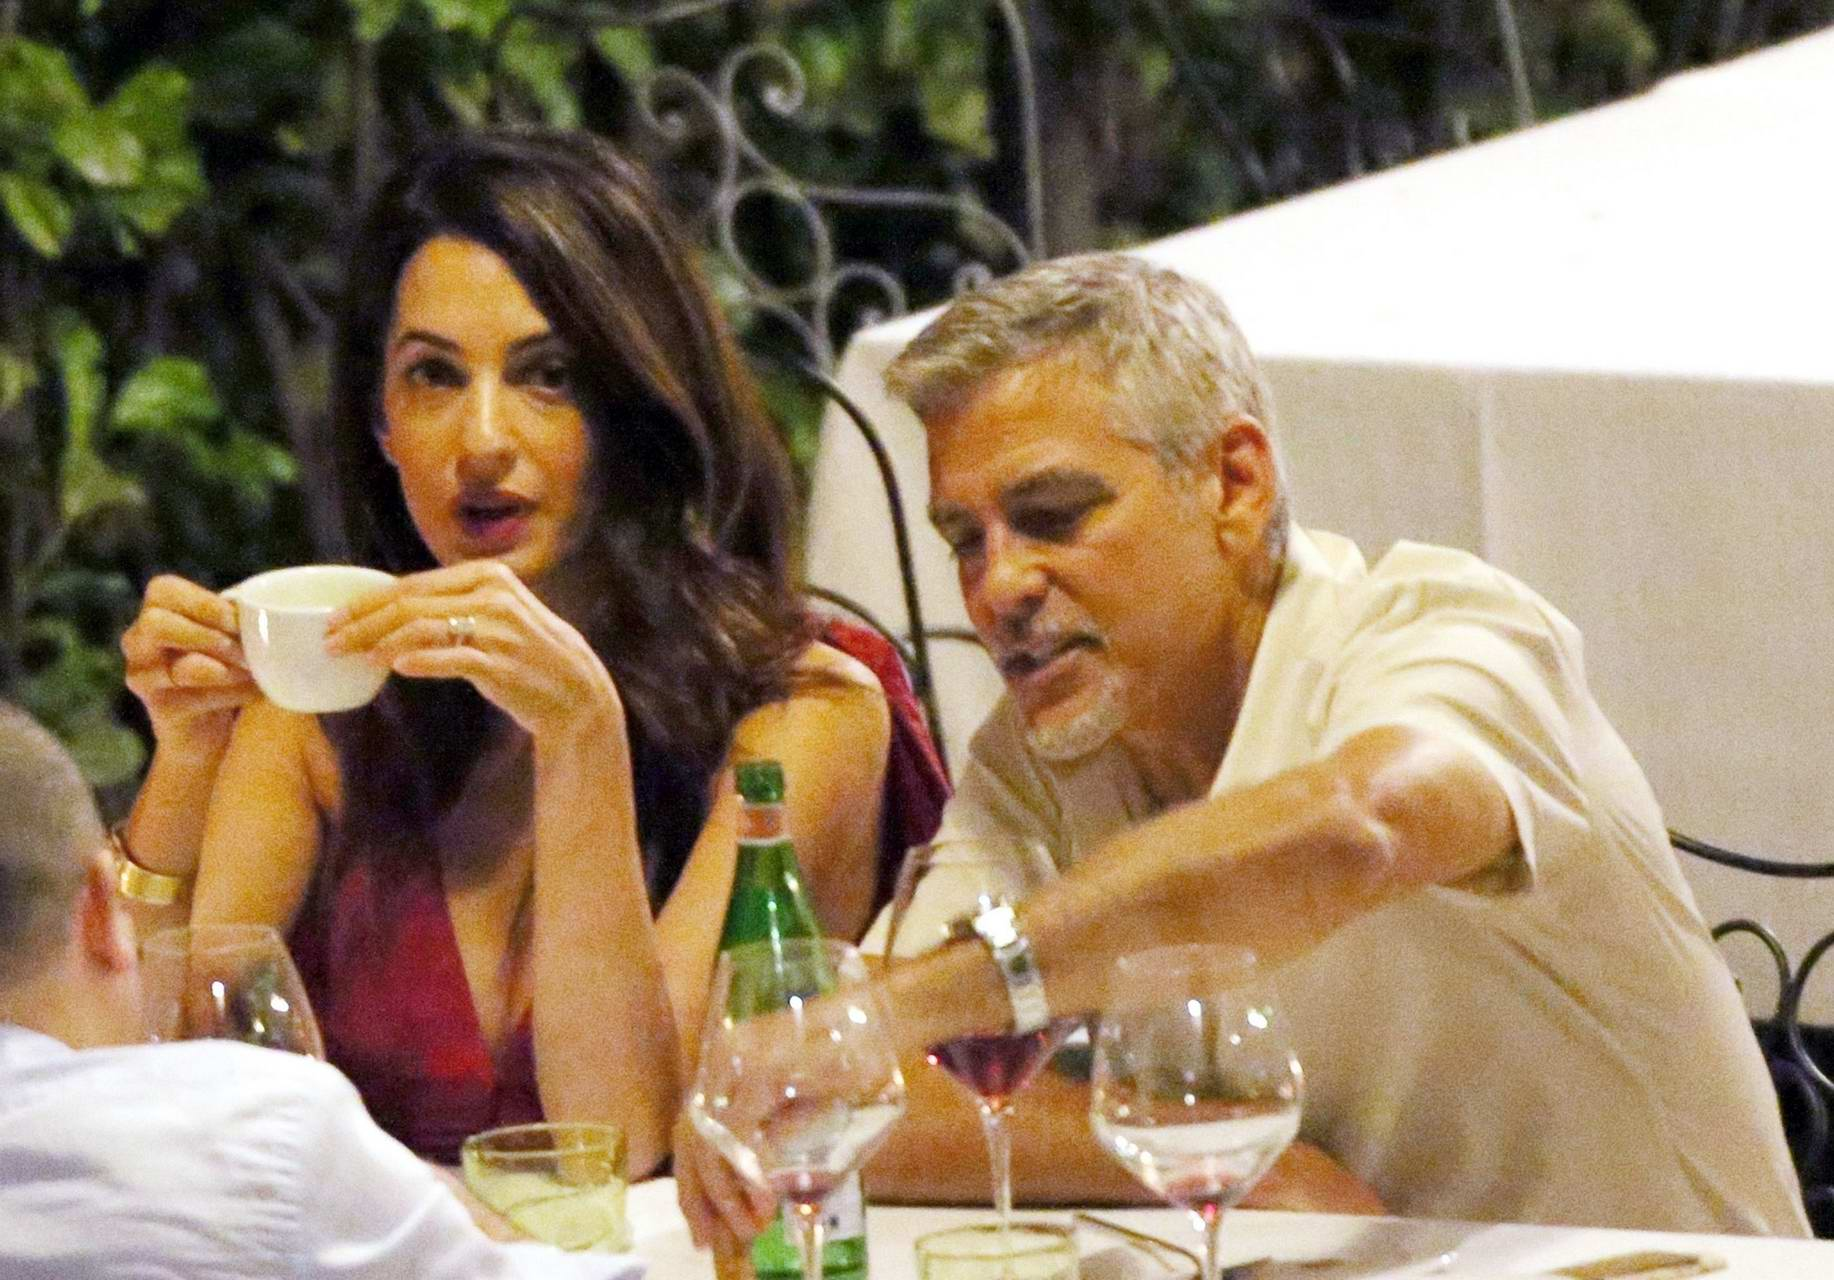 Amal clooney and george clooney candlelight dinner at le darsene in bellagio italy nudes (22 photos)